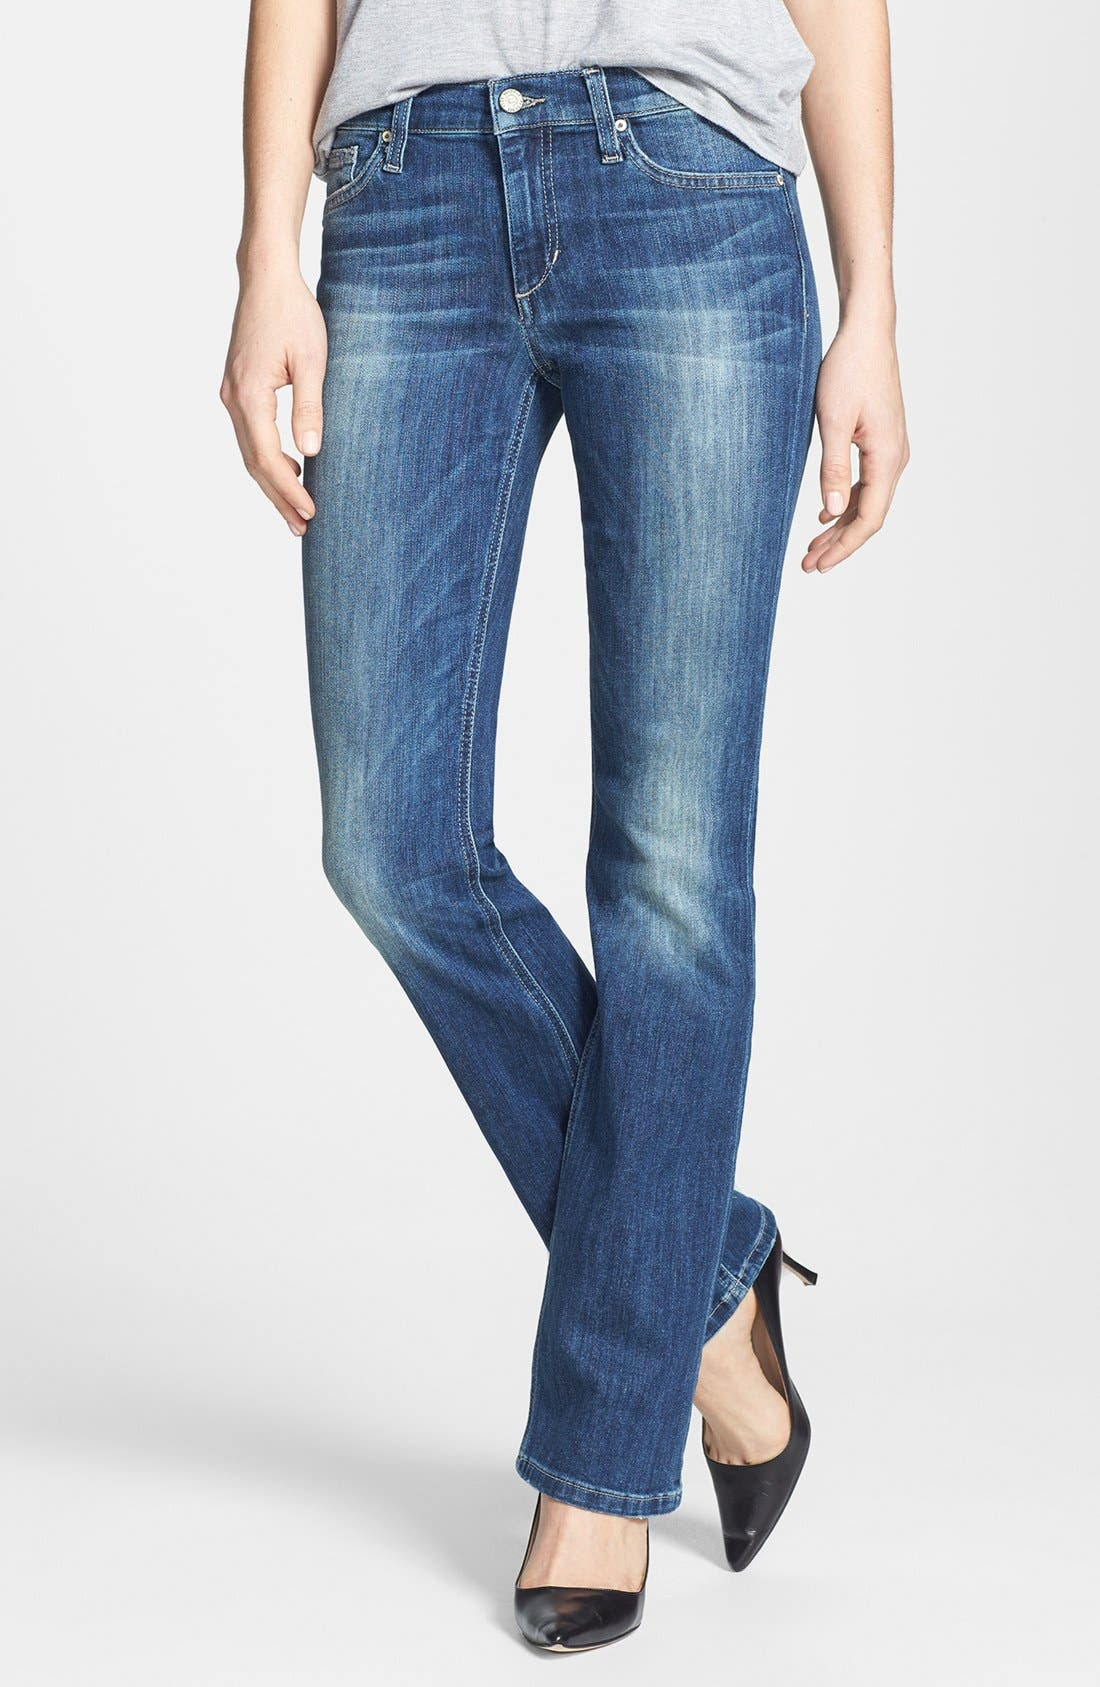 Alternate Image 1 Selected - Joe's Bootcut Jeans (Laurel) (Petite)